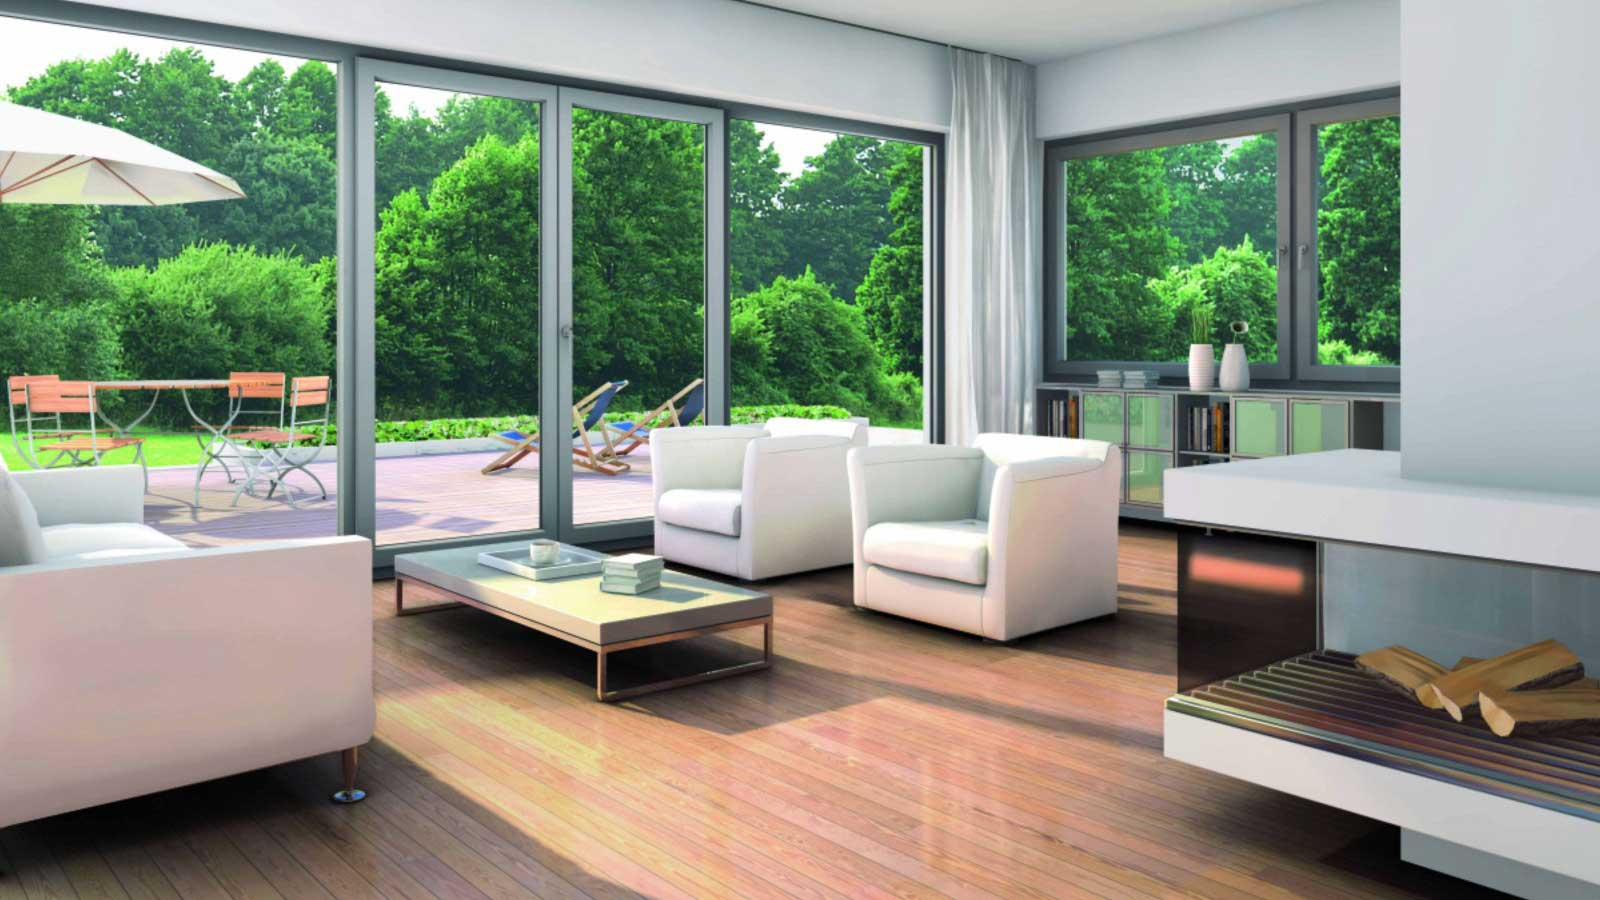 15 living room window designs decorating ideas design for Room design living room